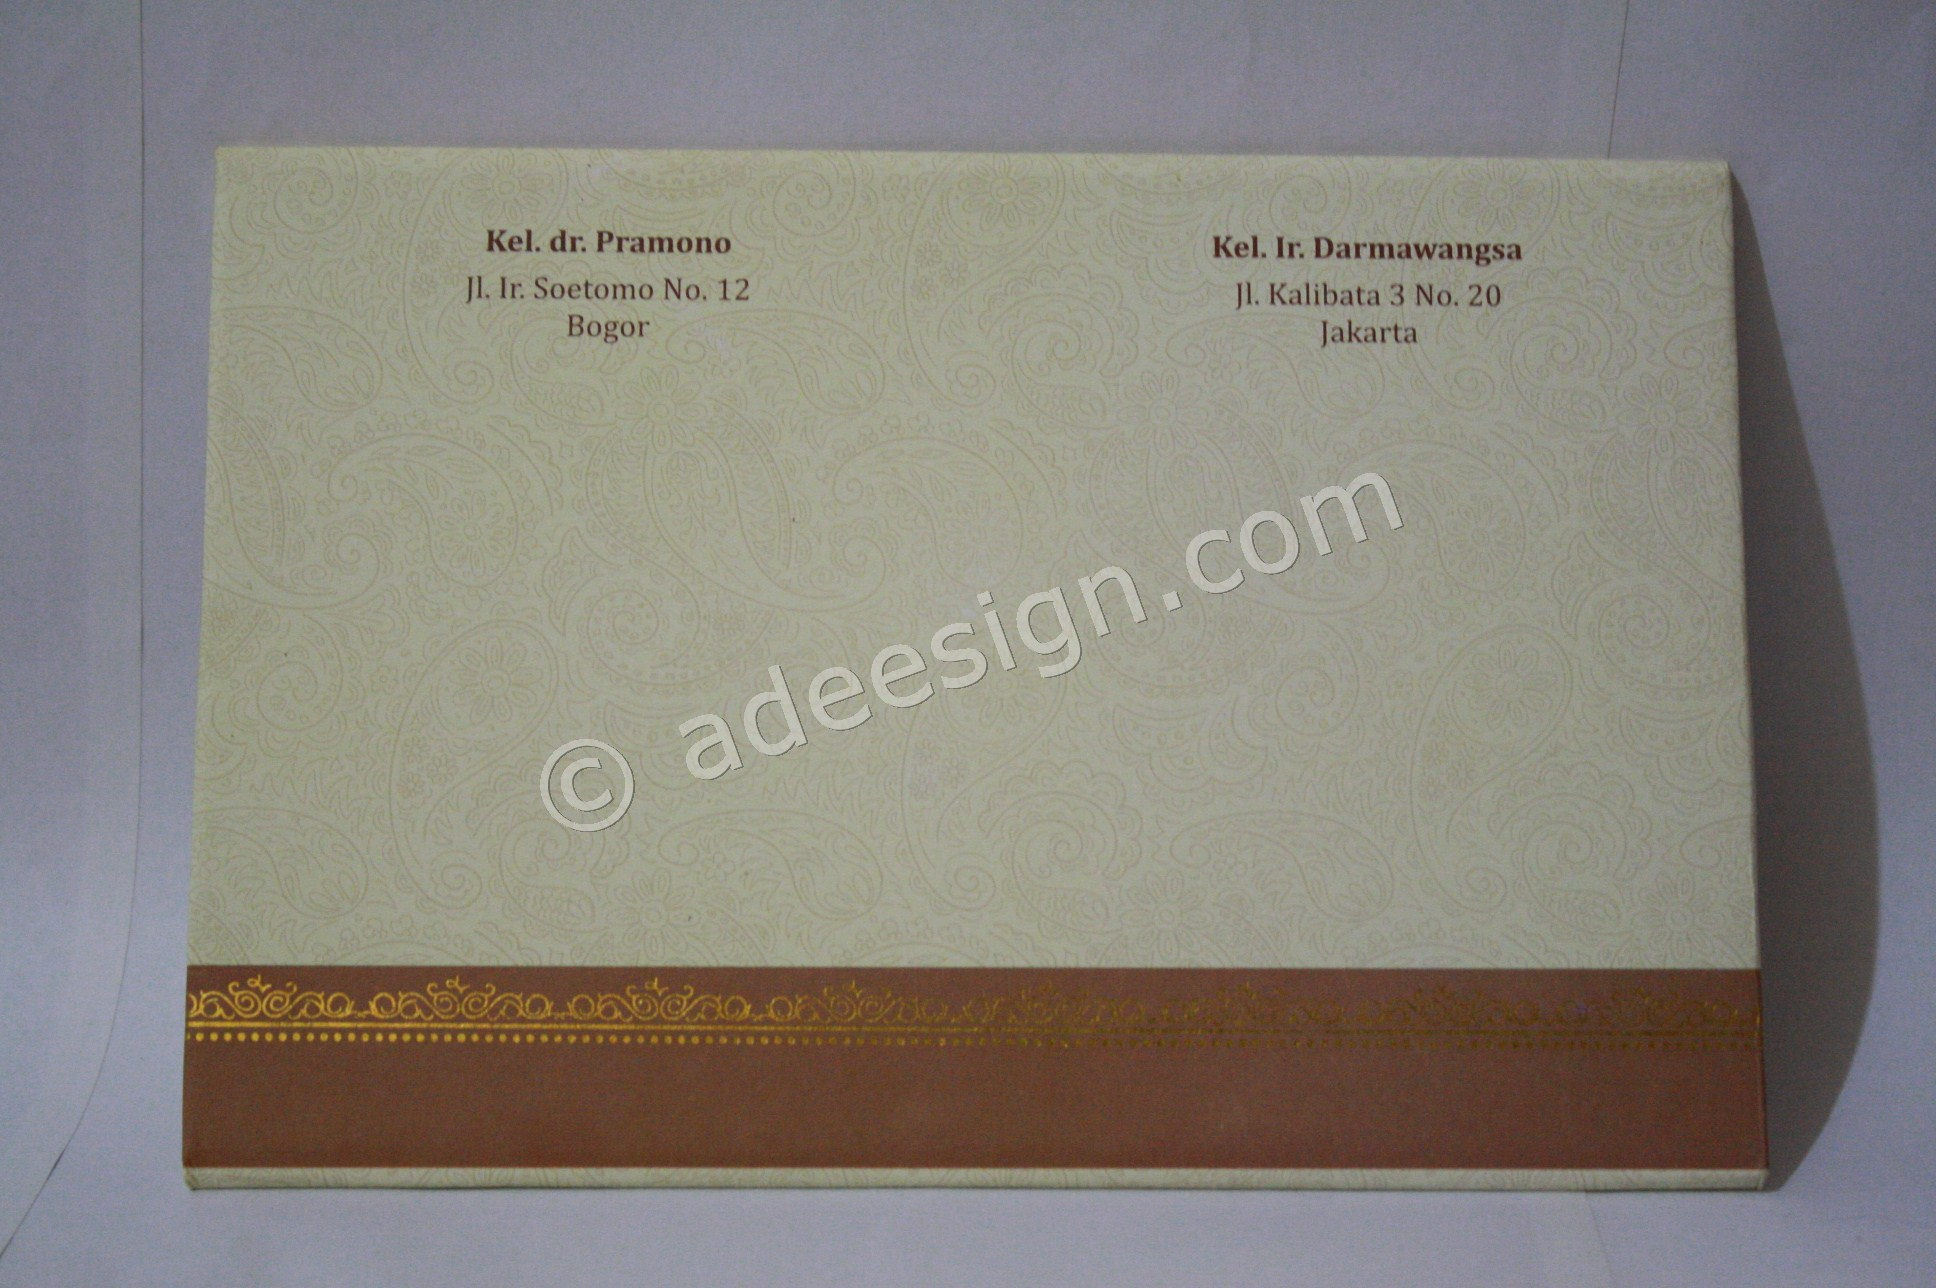 Pesan Wedding Invitations Simple di Rungkut Menanggal